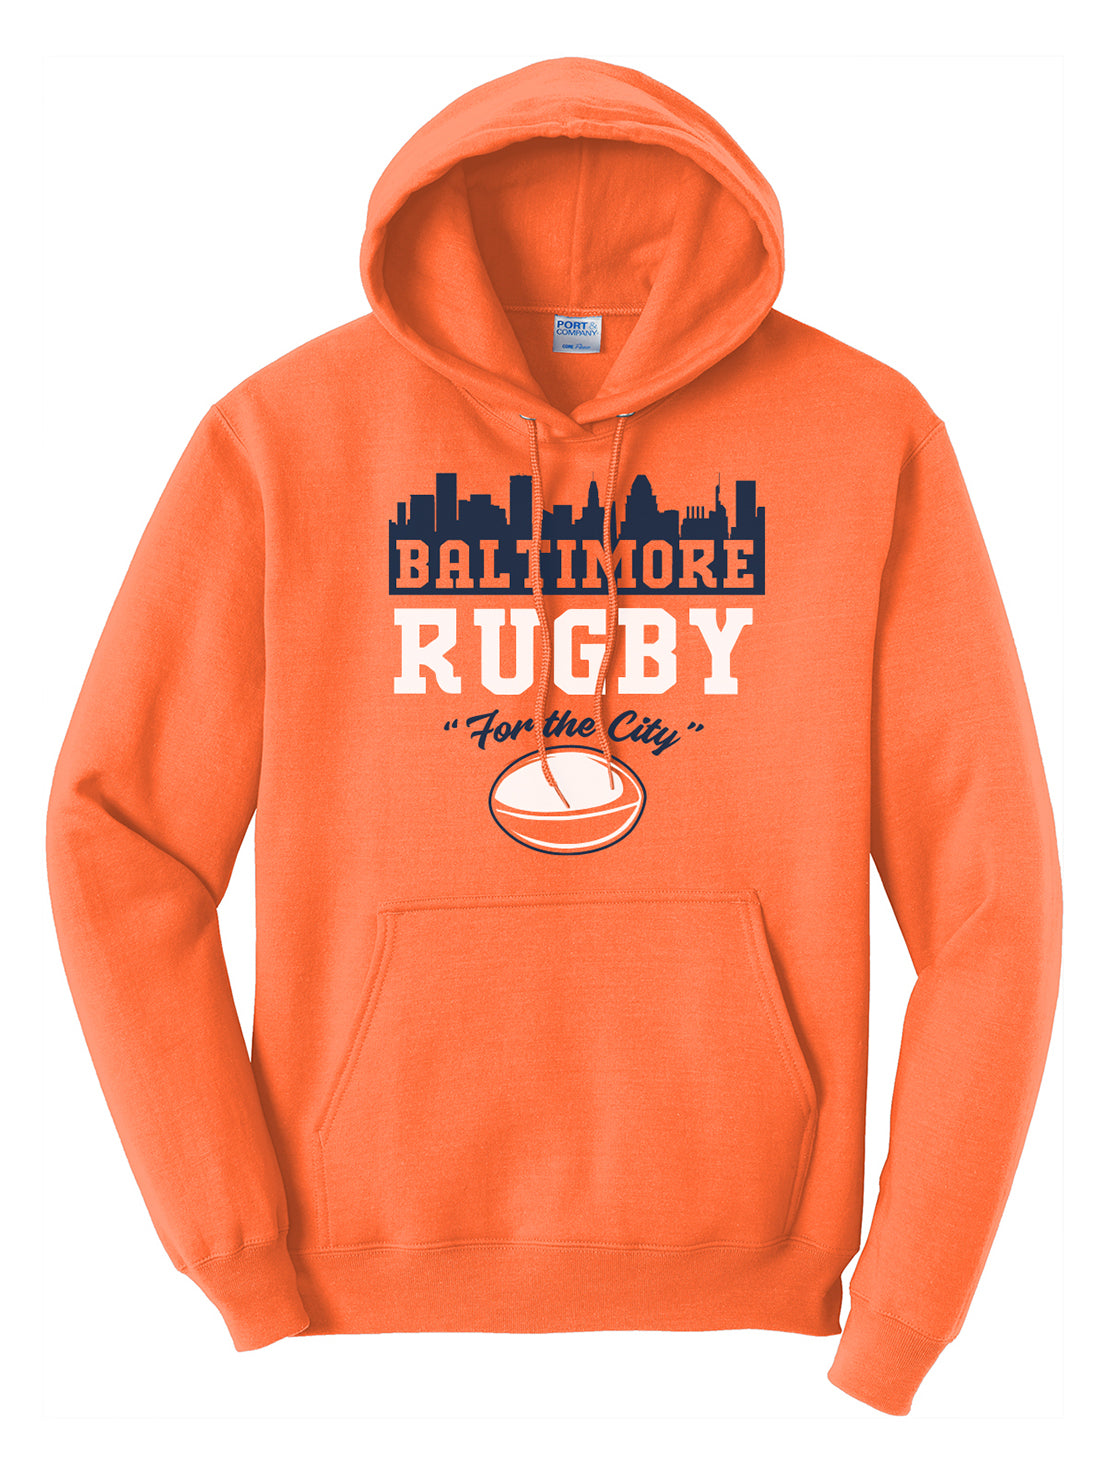 Baltimore Rugby Adult Hoodie - Bright Orange